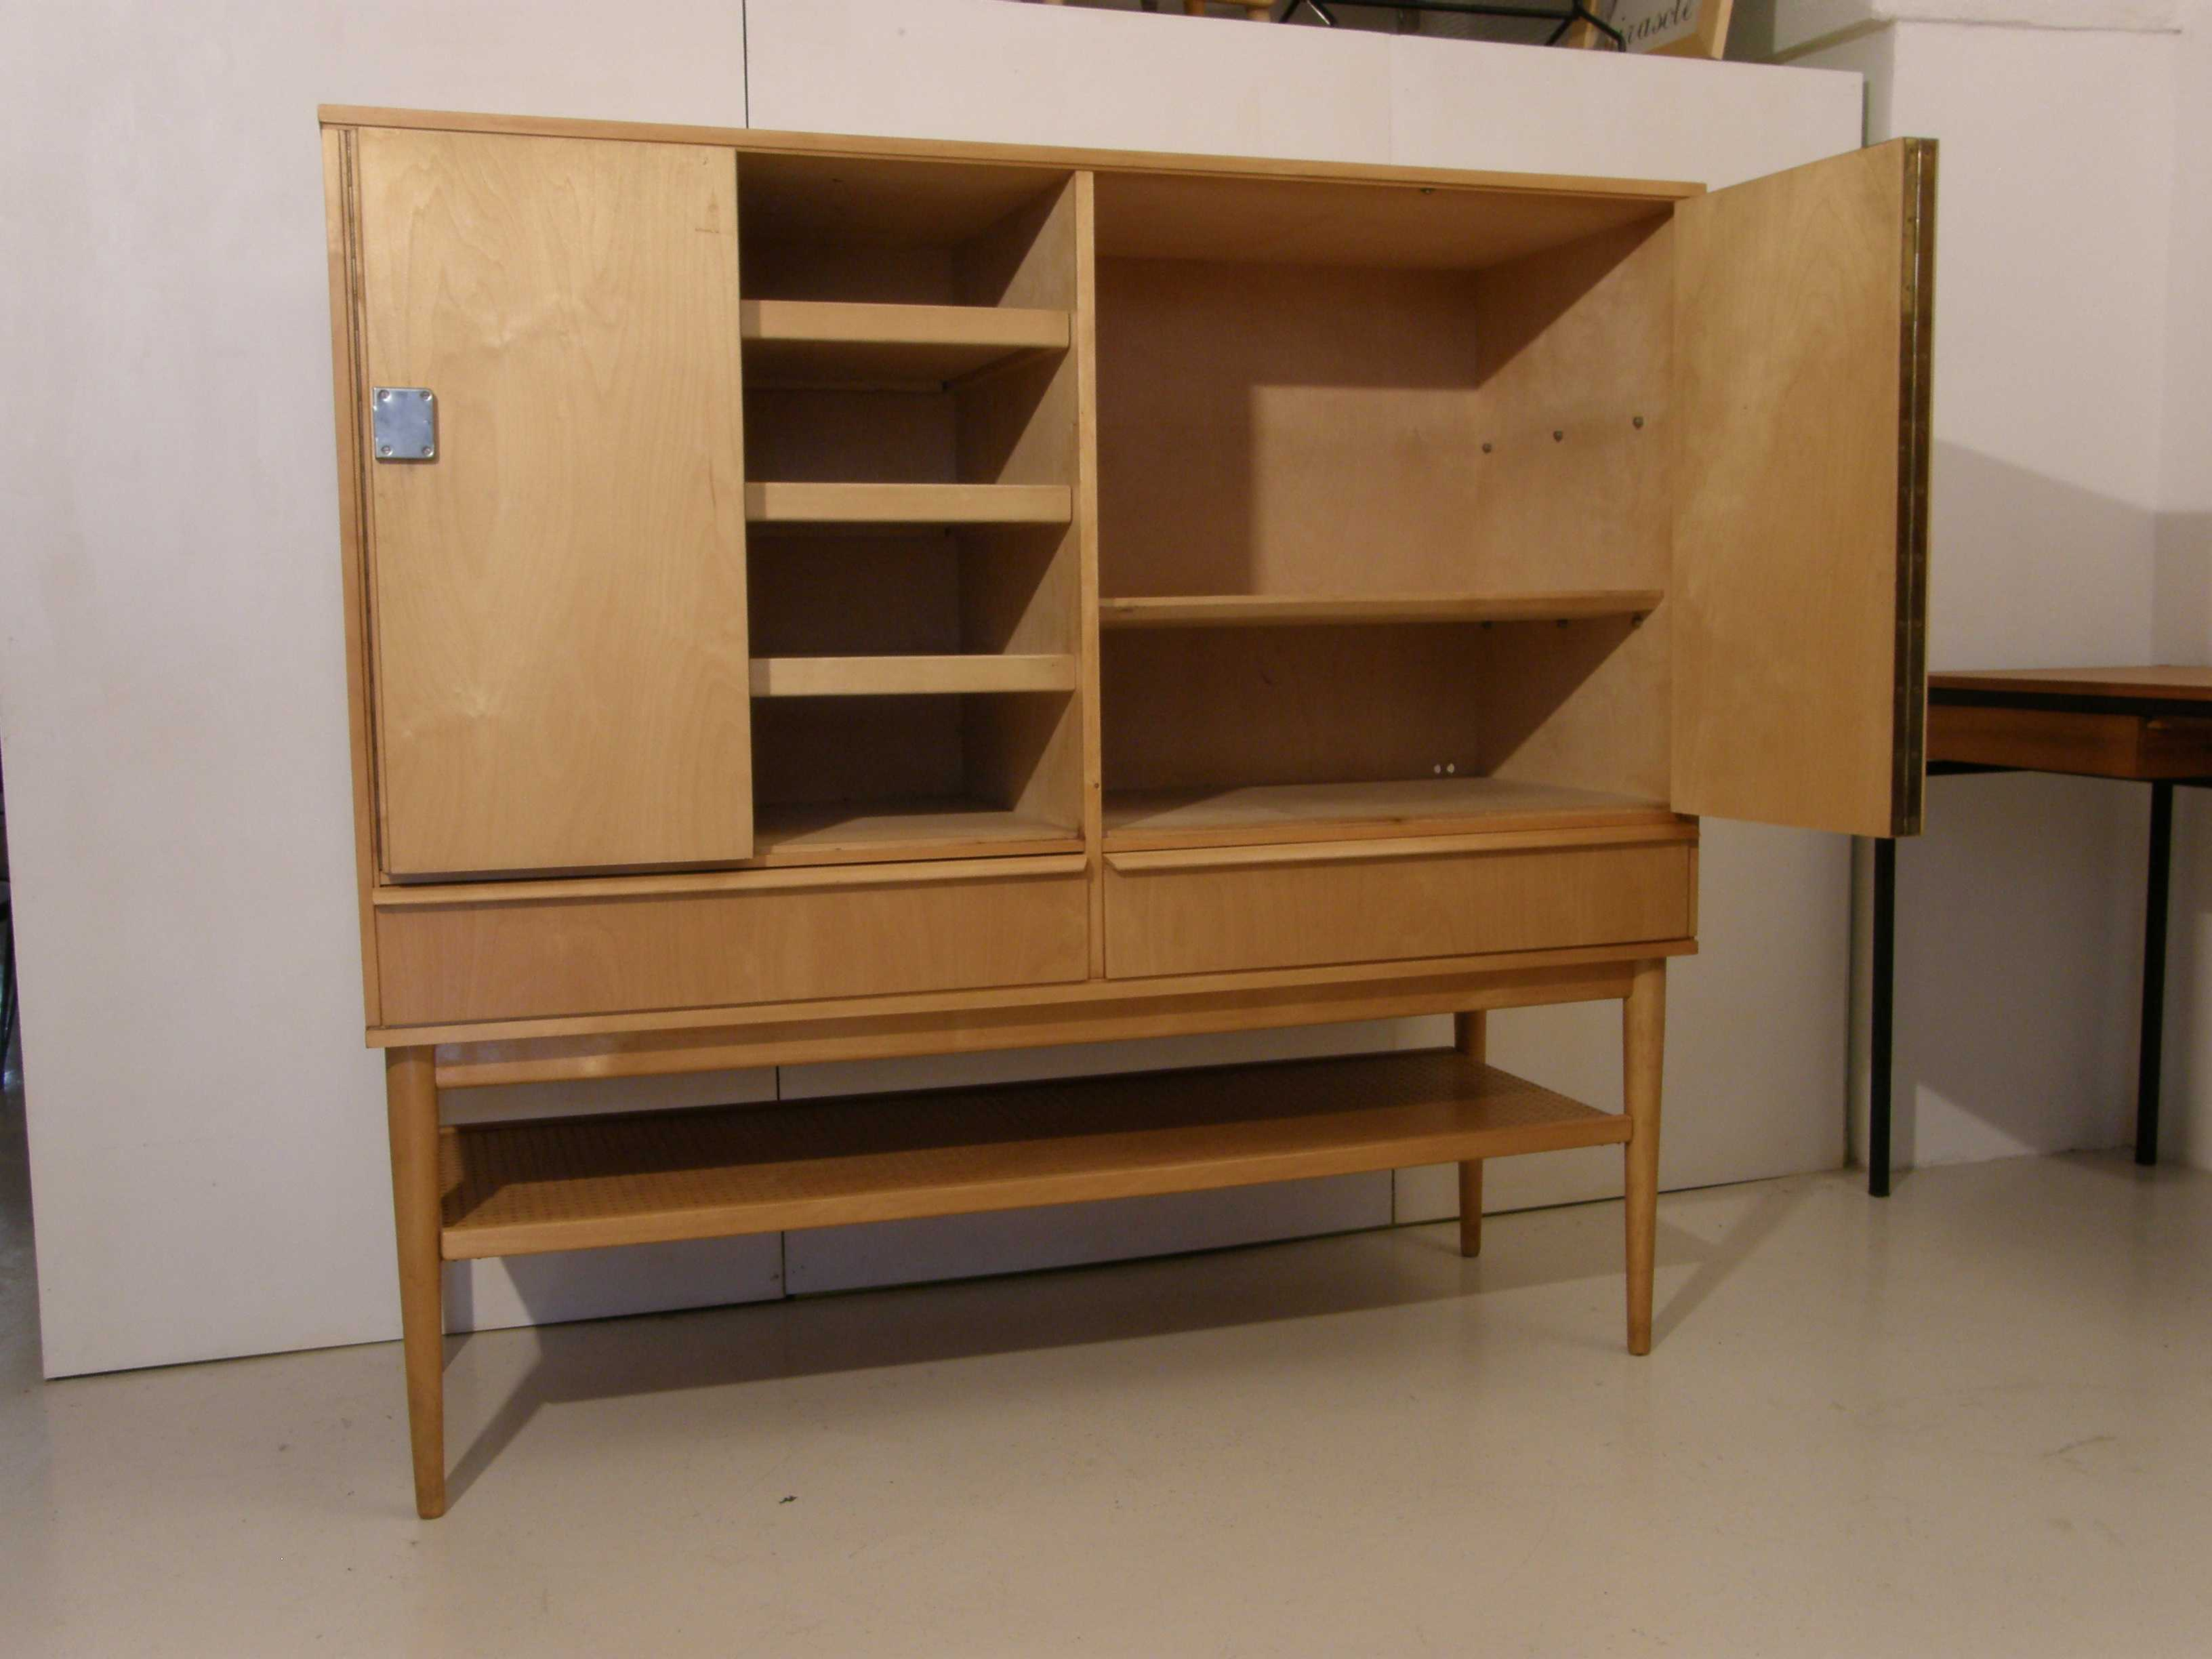 Ordinaire Ulti008 Special_cabinet_1 Special_cabinet_2 Special_cabinet_3  Special_cabinet_4. Name Special Cabinet ...